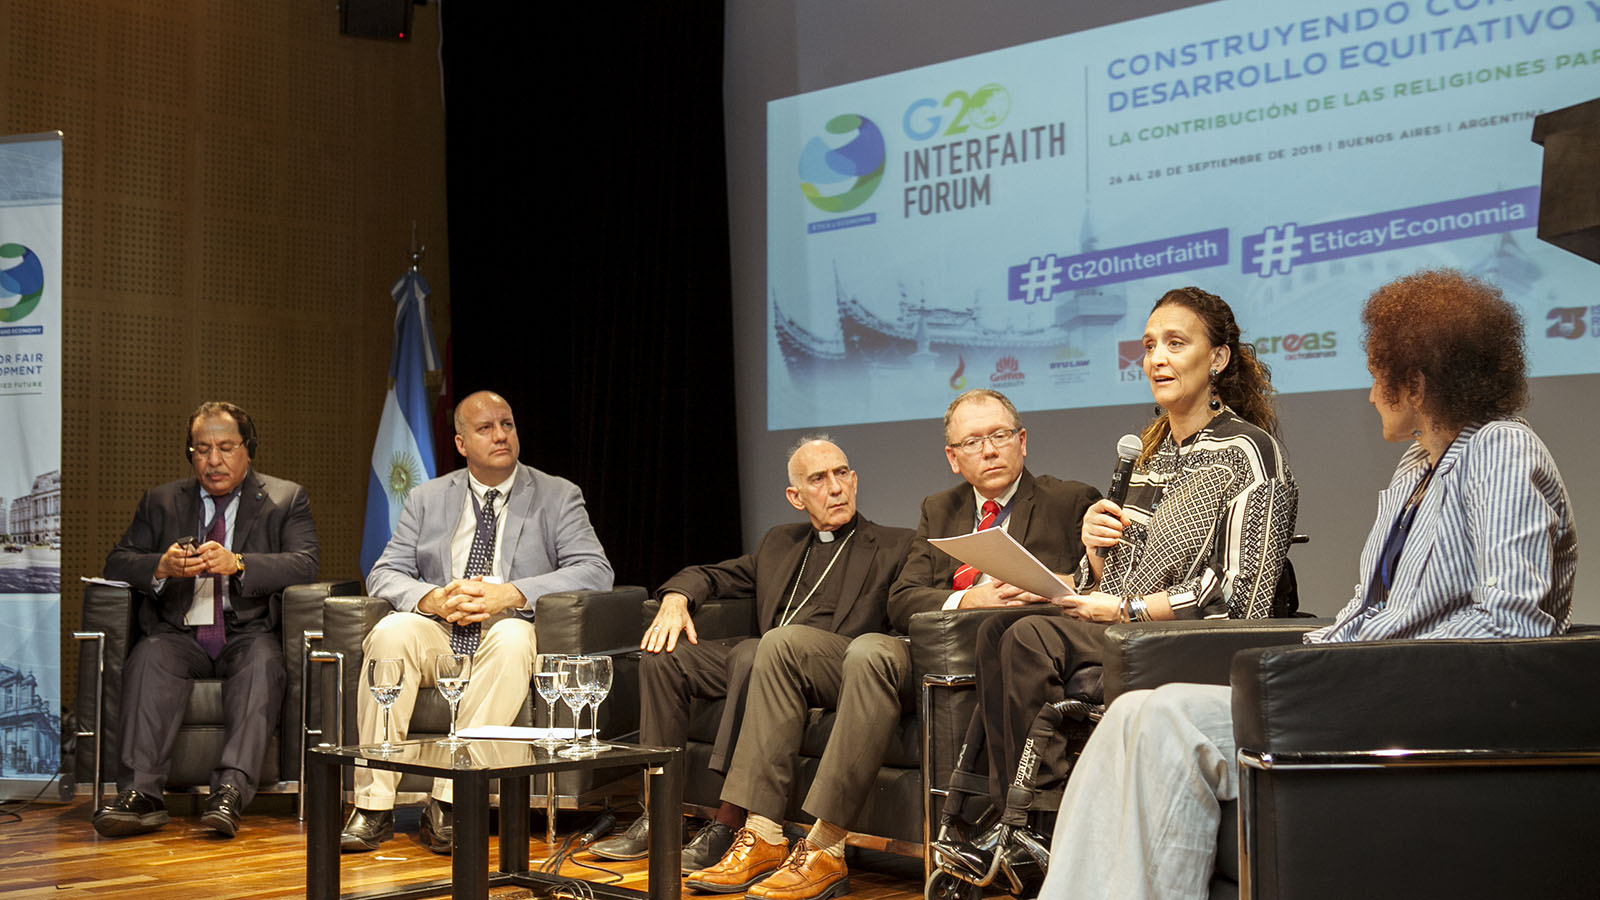 Panelists speak during a session of the 2018 Interfaith Forum in Argentina.